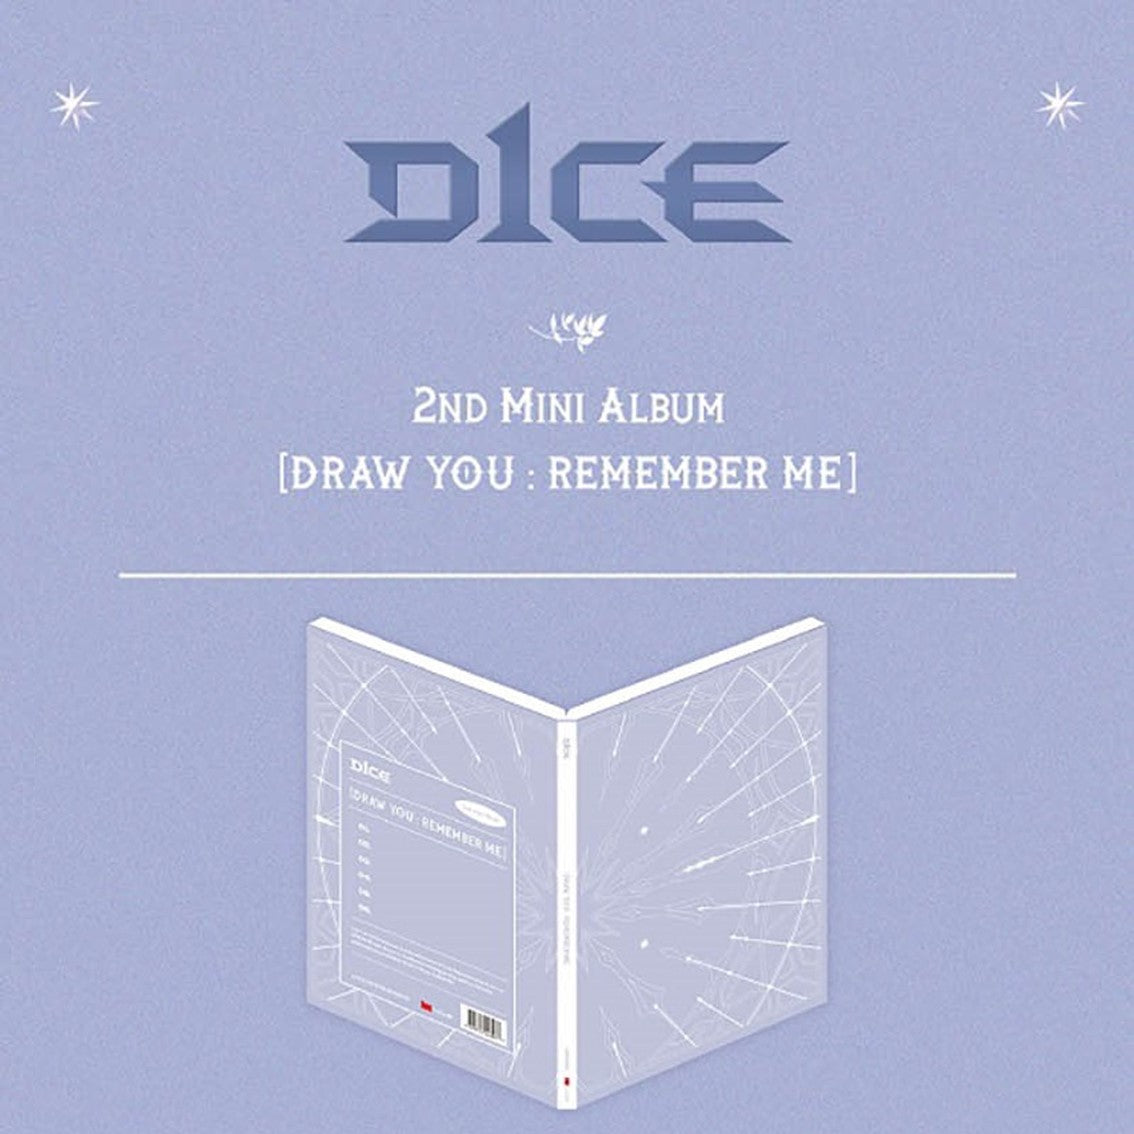 D1CE - 2nd Mini Album - Draw You: Remember Me